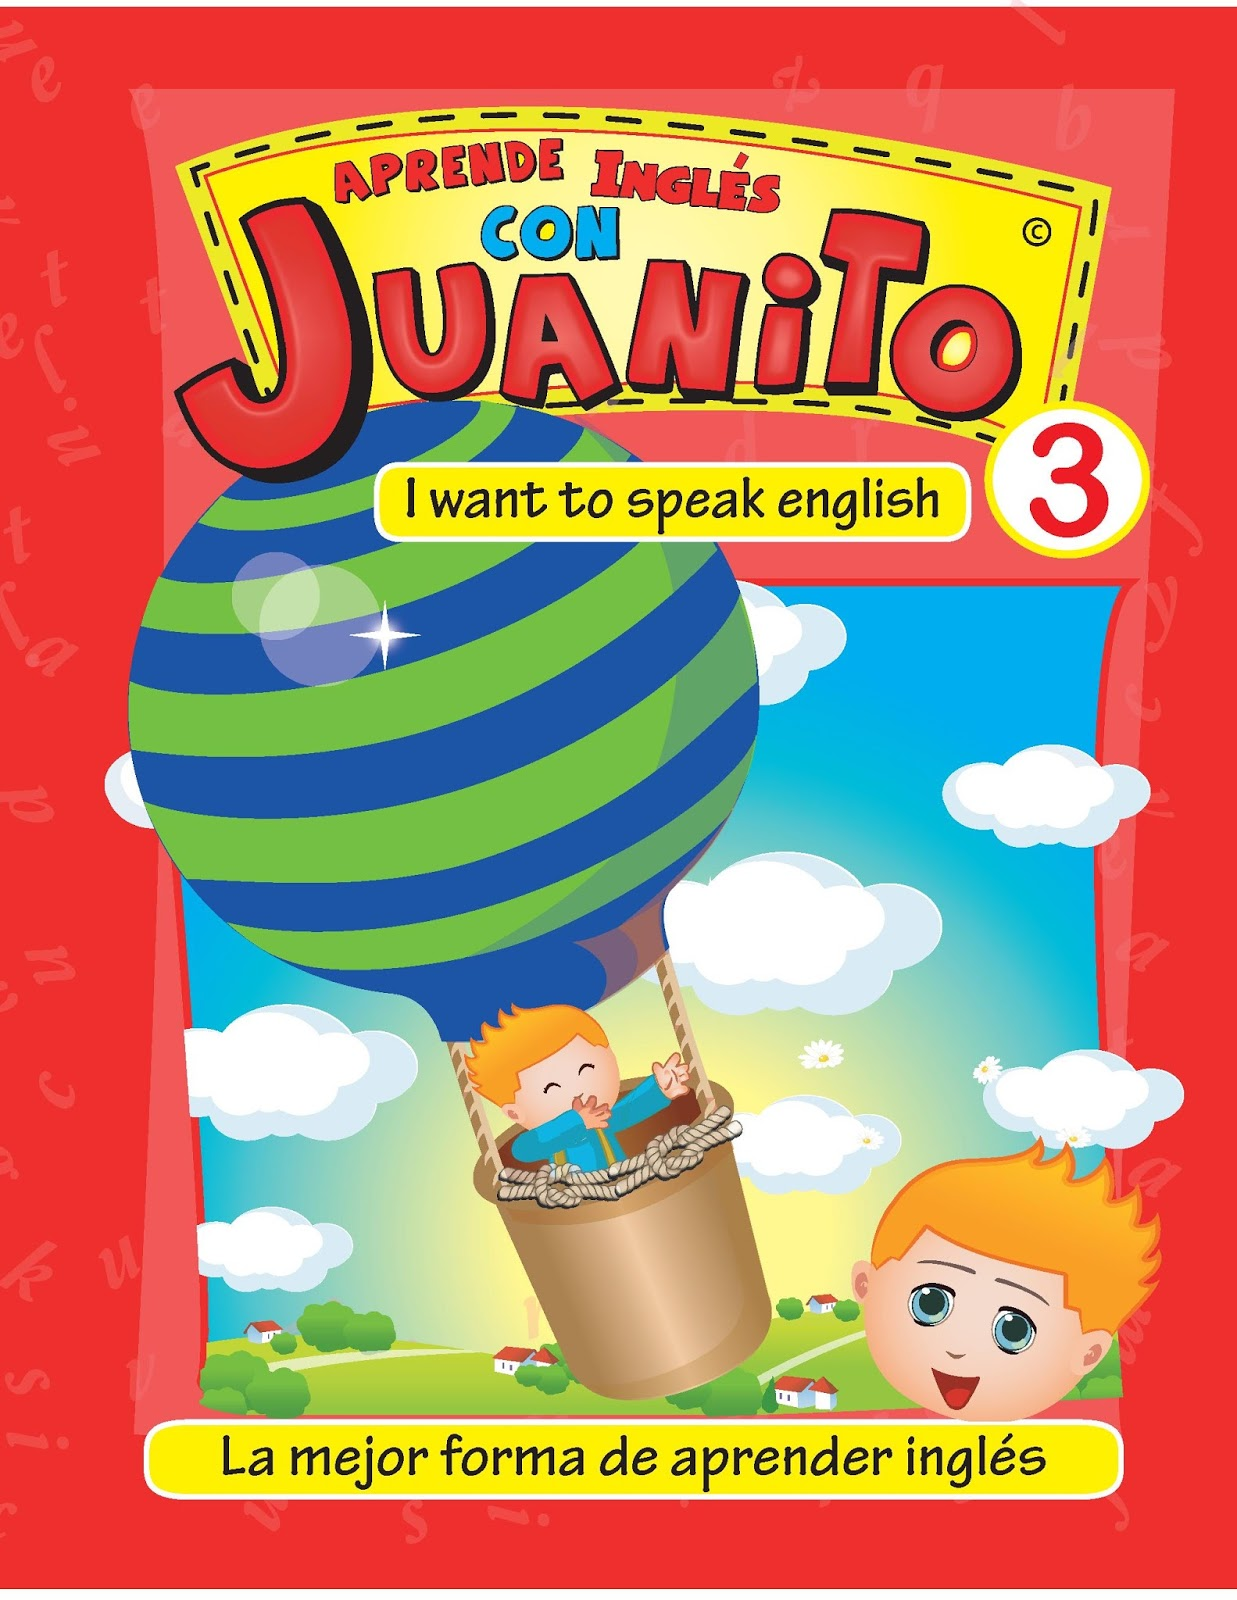 Mejores Libros Aprender Ingles Aprende Inglés Con Juanito I Want To Speak English 3